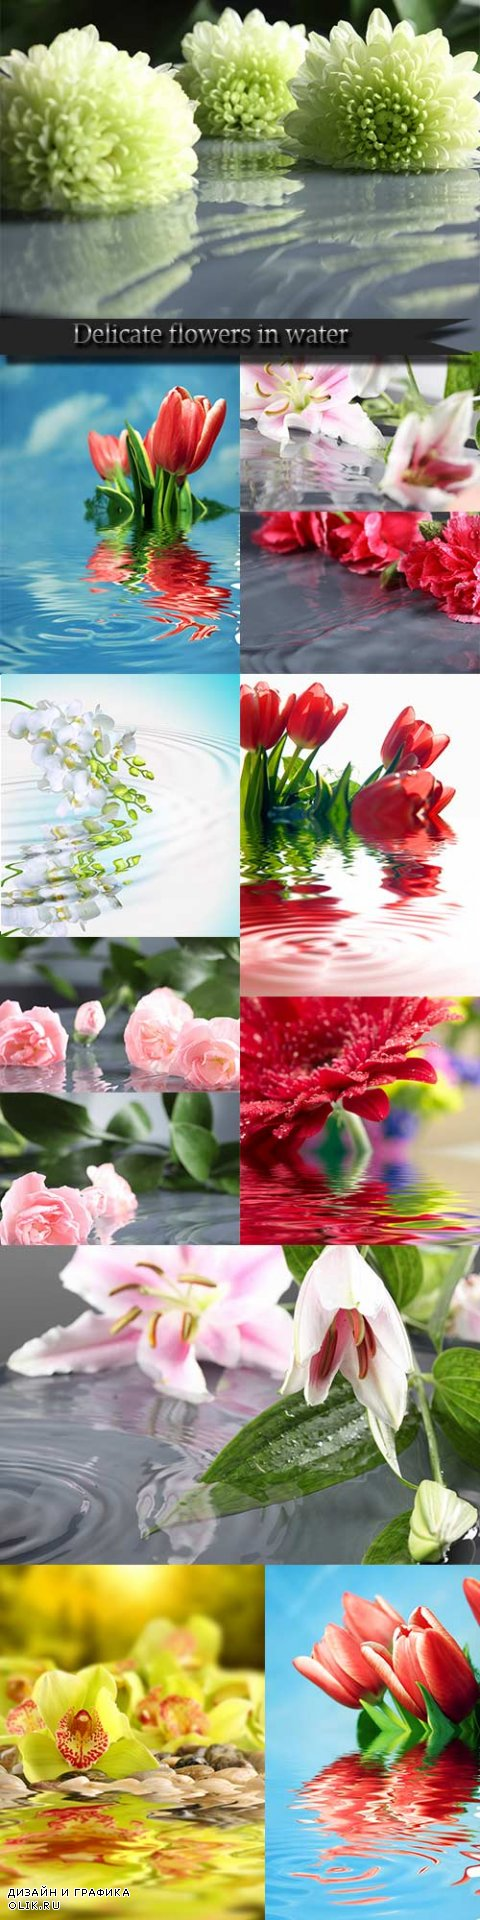 Delicate flowers in water